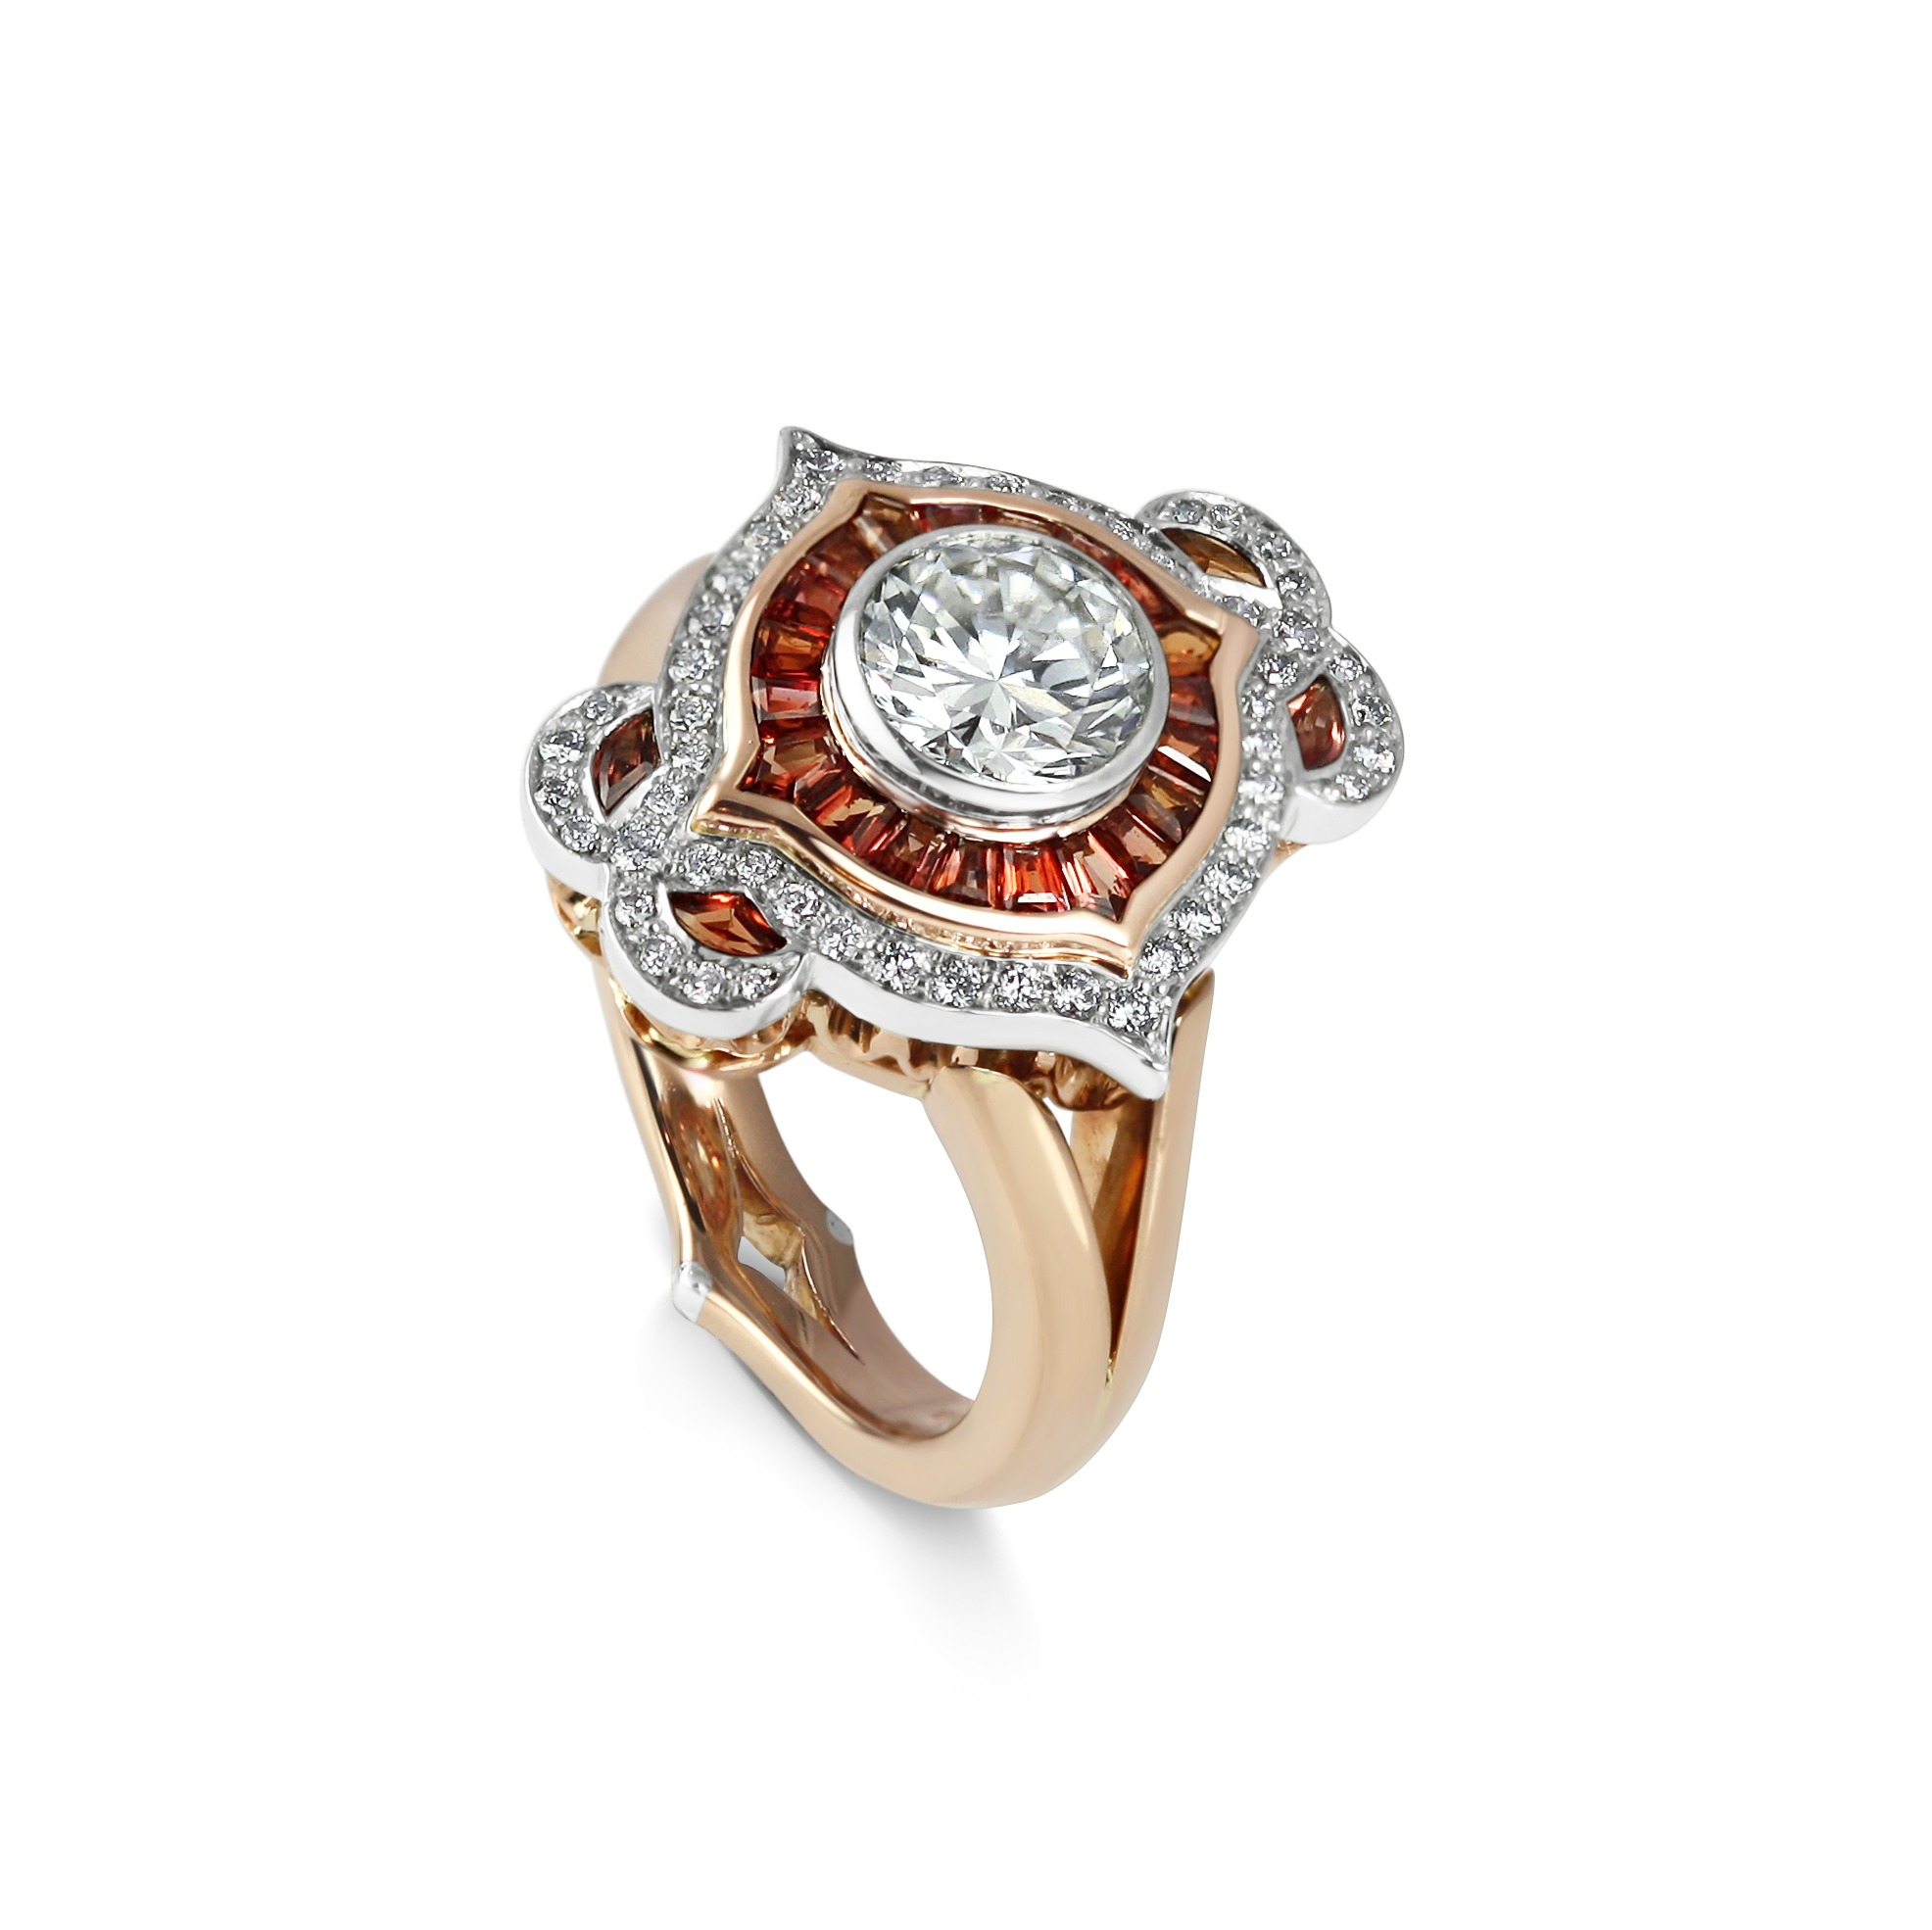 Bespoke Archive ~ Jennifer's Ring